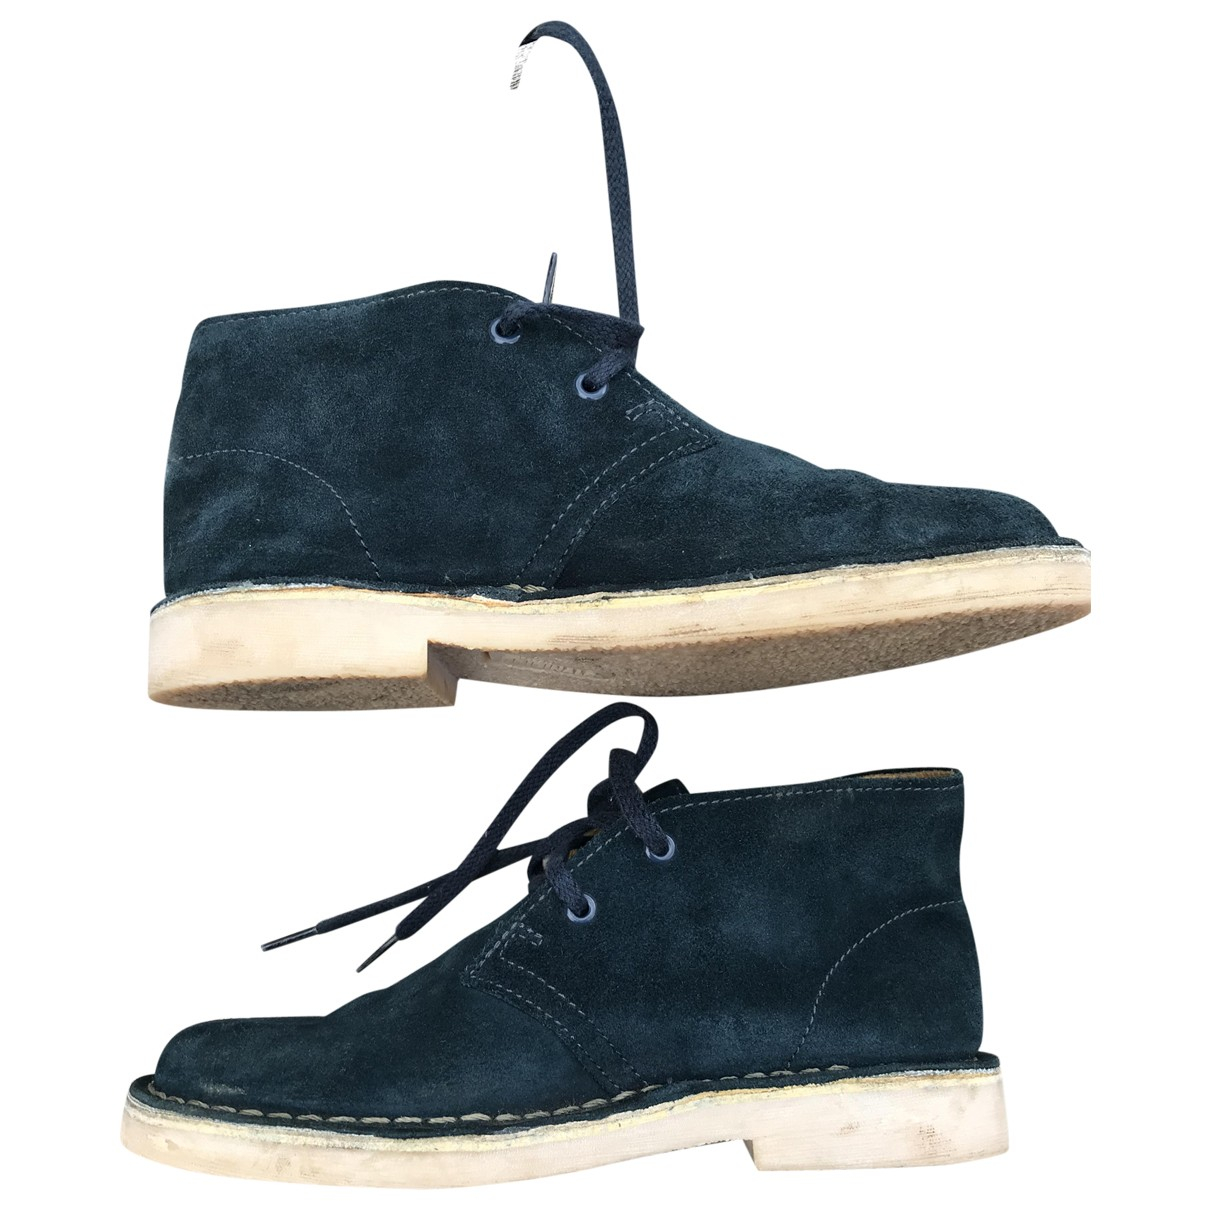 Clarks N Navy Suede Lace up boots for Kids 12.5 UK